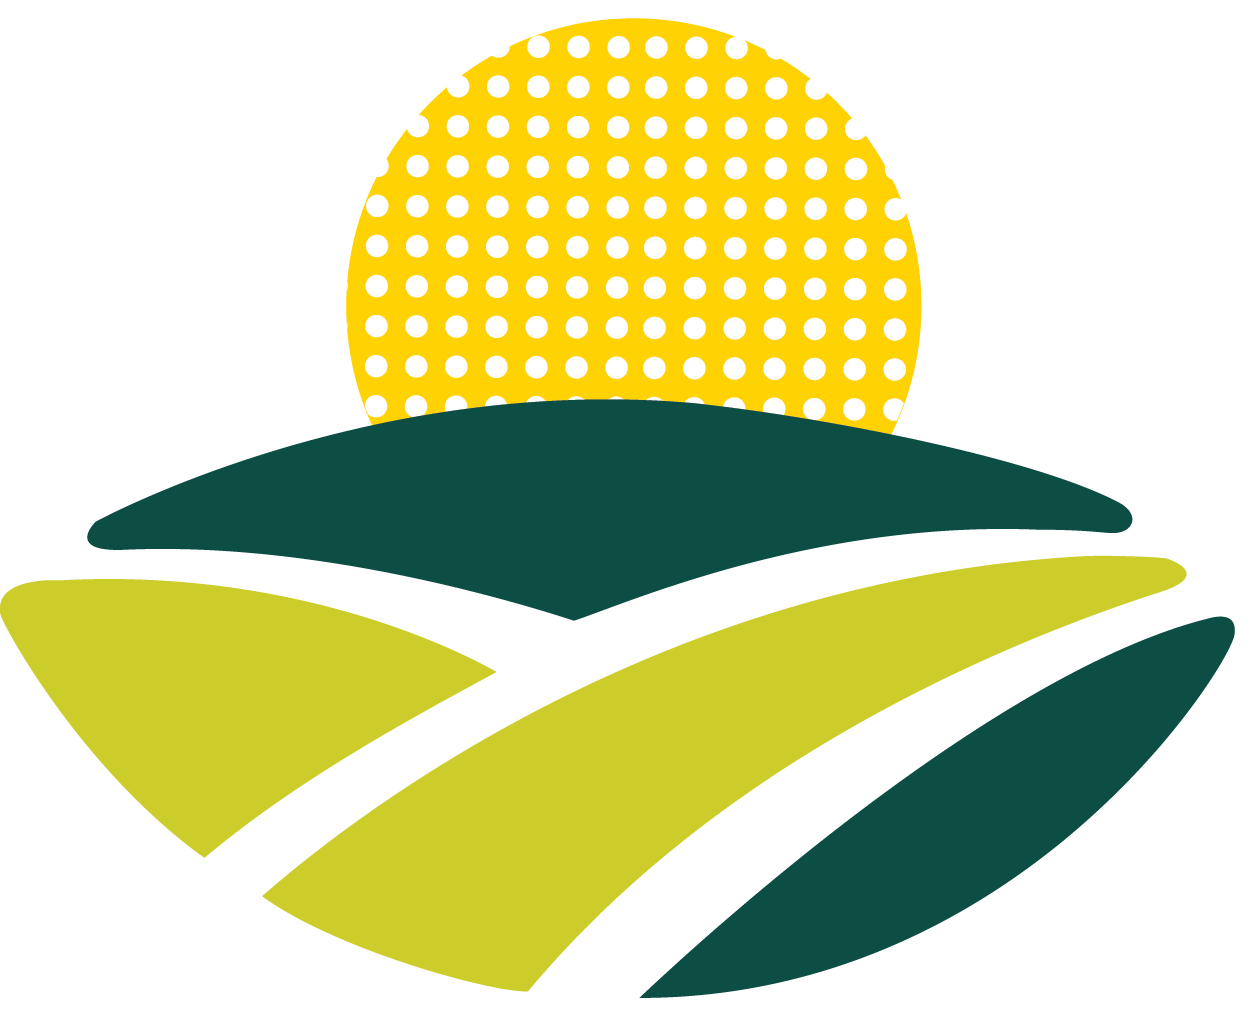 Farmers clipart agriculture sector. Rural and uhy hacker